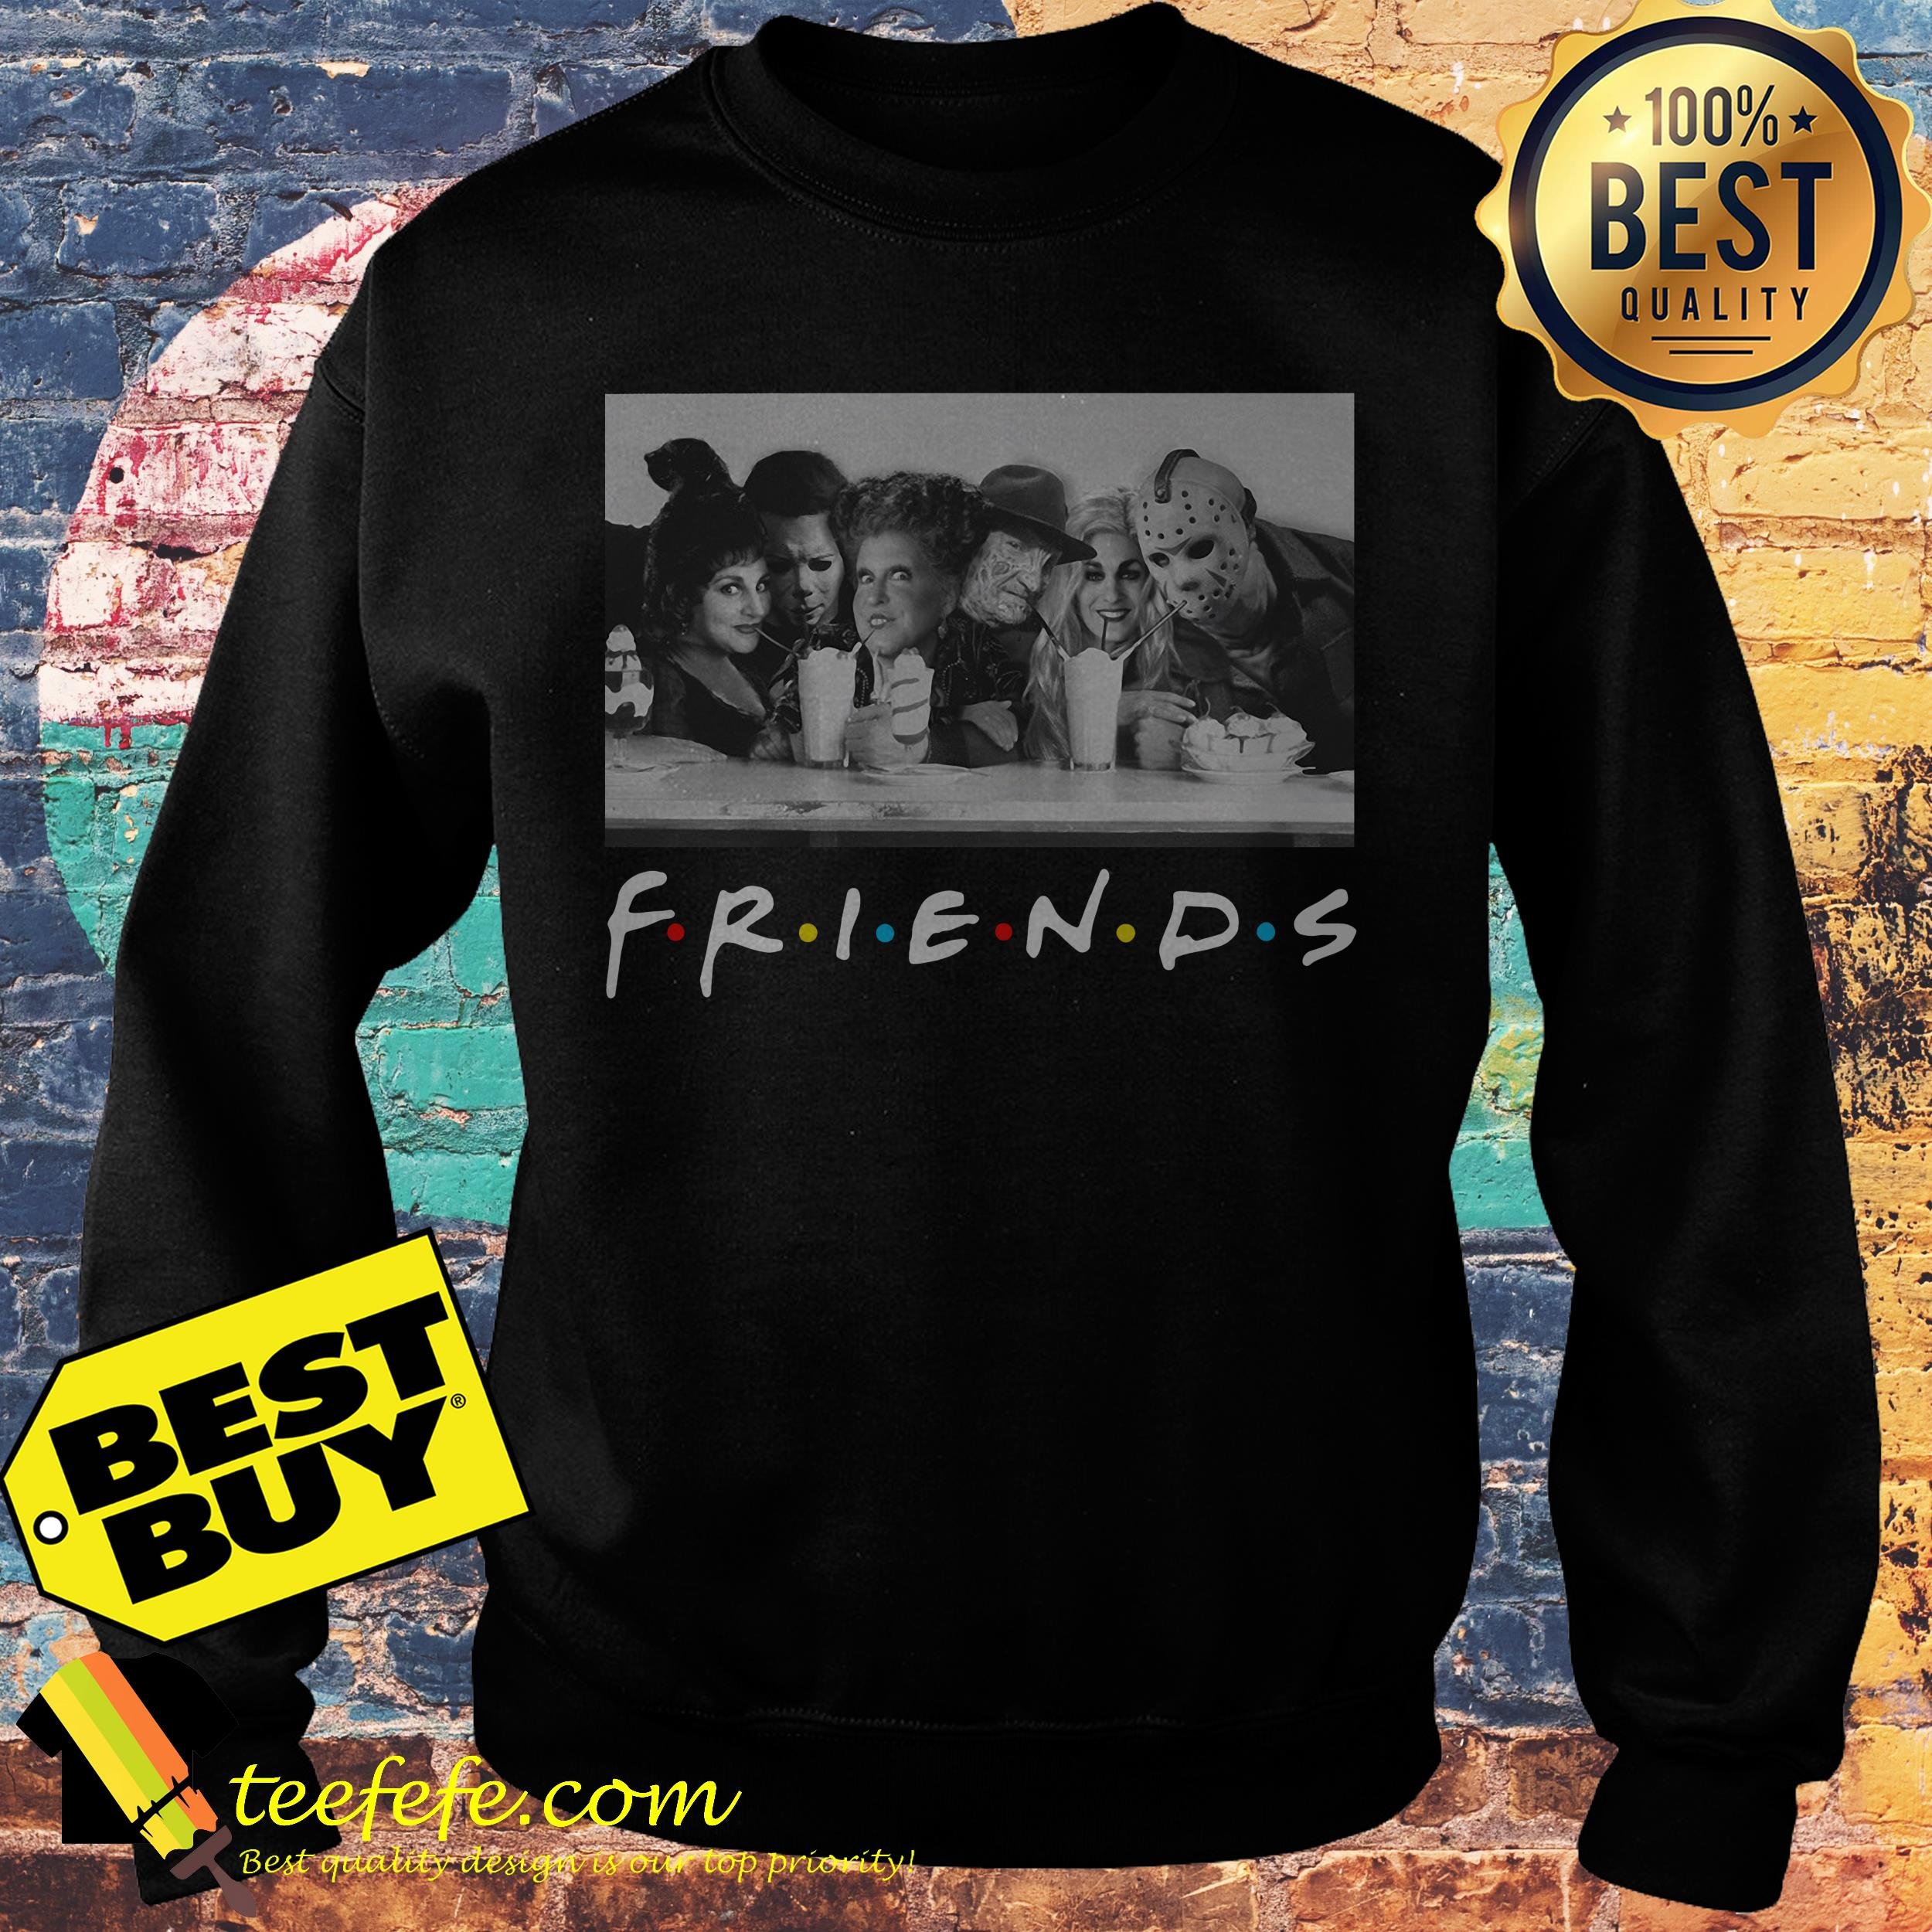 Halloween Friends Shirt.Hocus Pocus Horror Movie Friends Tv Show Halloween Shirt